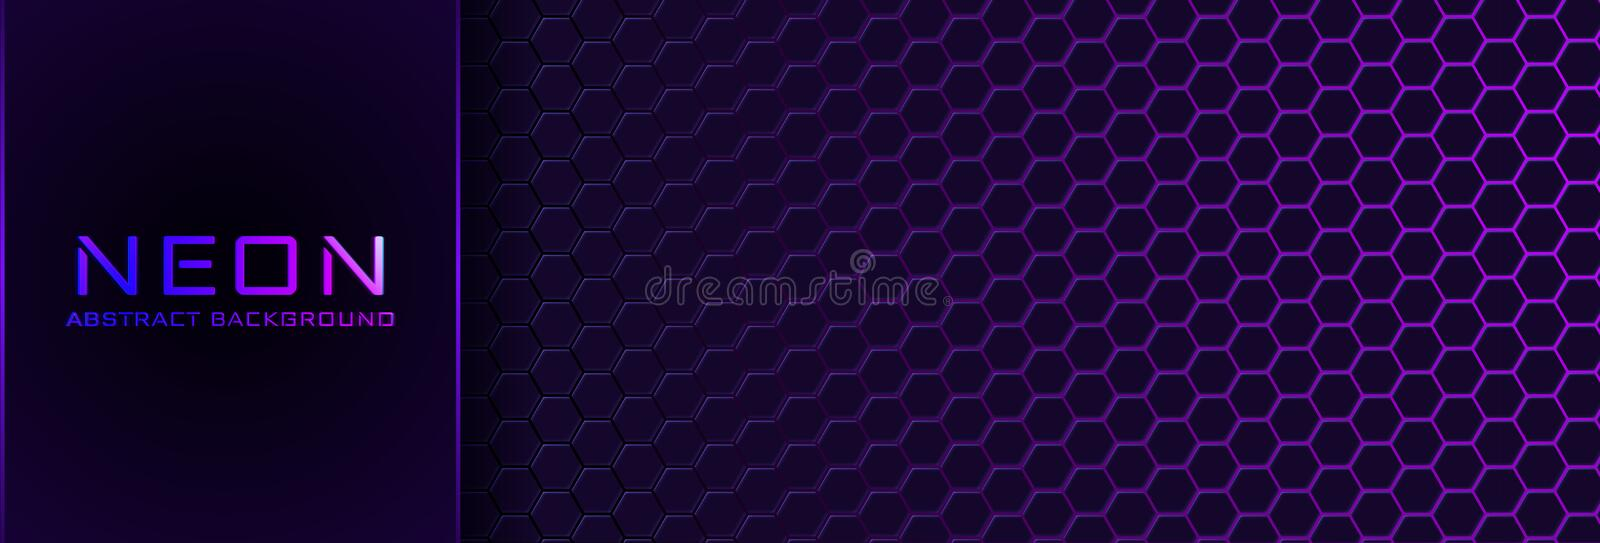 Abstract neon background with violet light, line and texture. Vector banner design in dark night colour royalty free illustration